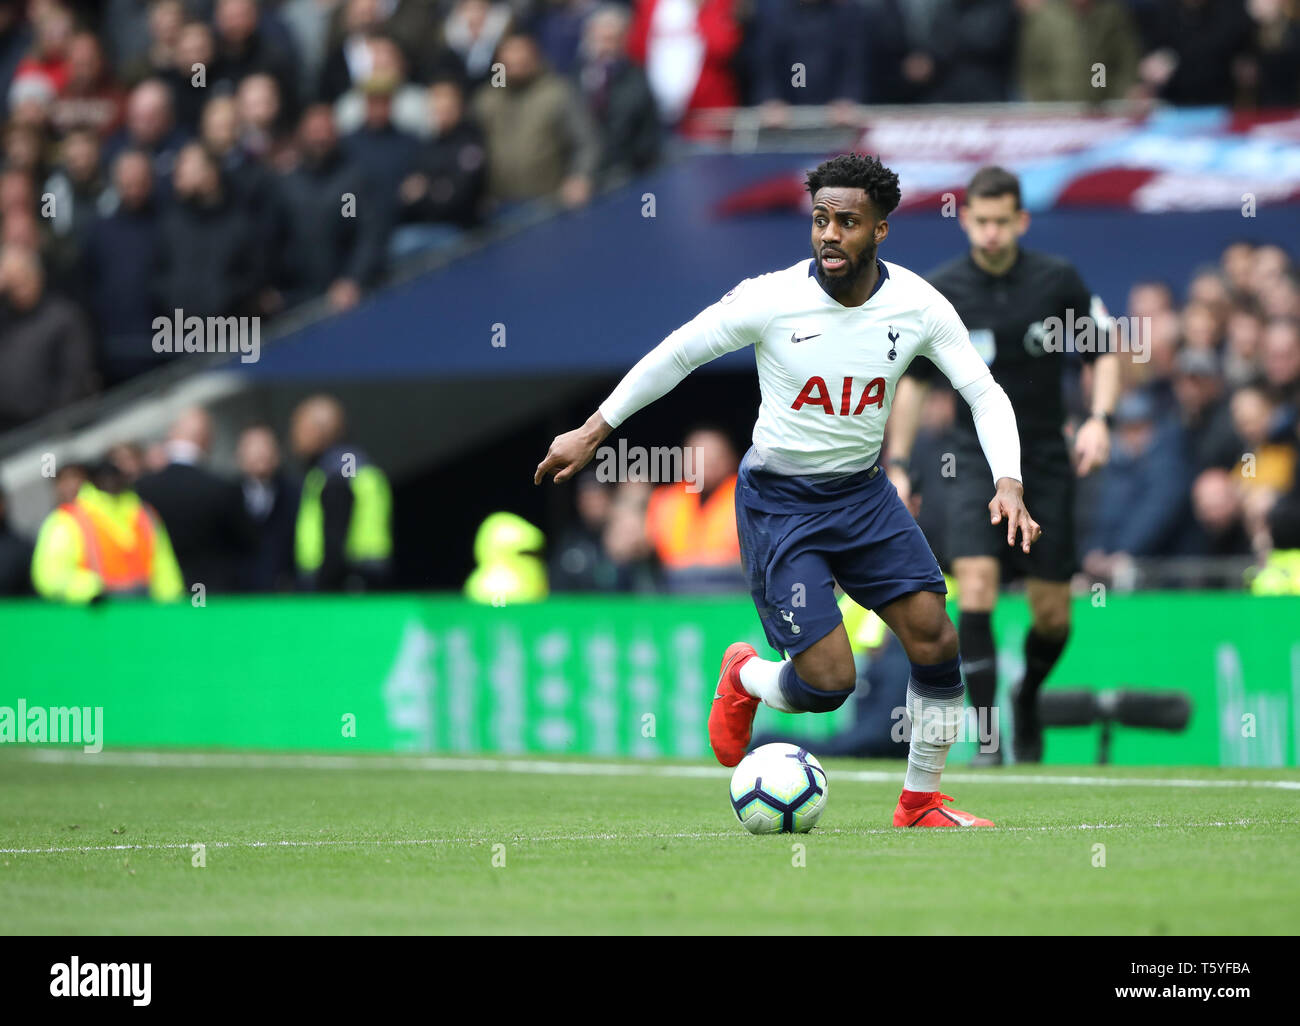 London, UK. 27th Apr 2019. Danny Rose (TH) at the Tottenham Hotspur v West Ham United English Premier League match, at The Tottenham Hotspur Stadium, London, UK on April 27, 2019. **Editorial use only, license required for commercial use. No use in betting, games or a single club/league/player publications** Credit: Paul Marriott/Alamy Live News - Stock Image